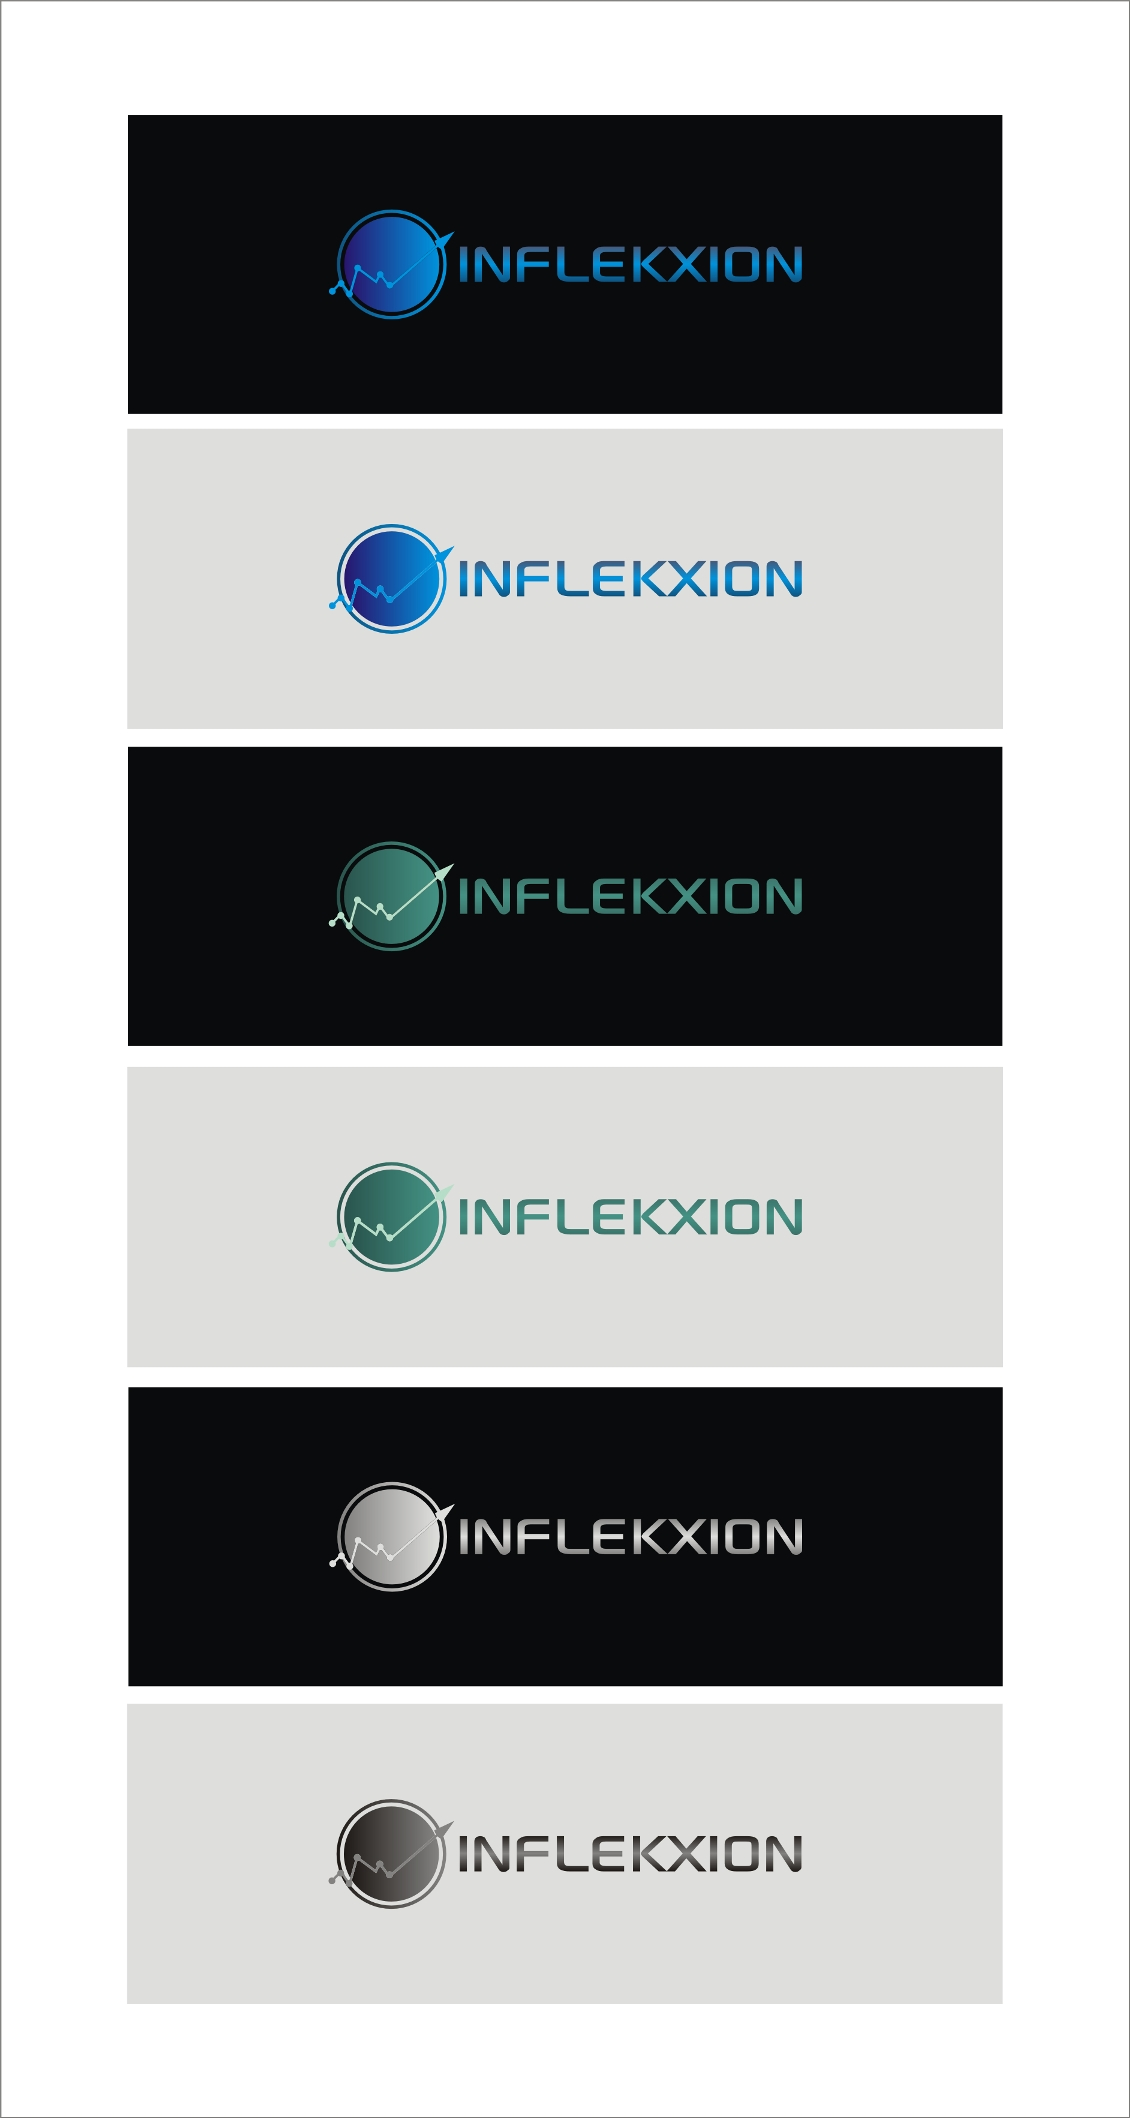 Logo Design by Dody Setiyawan - Entry No. 154 in the Logo Design Contest Professional Logo Design for Inflekxion.